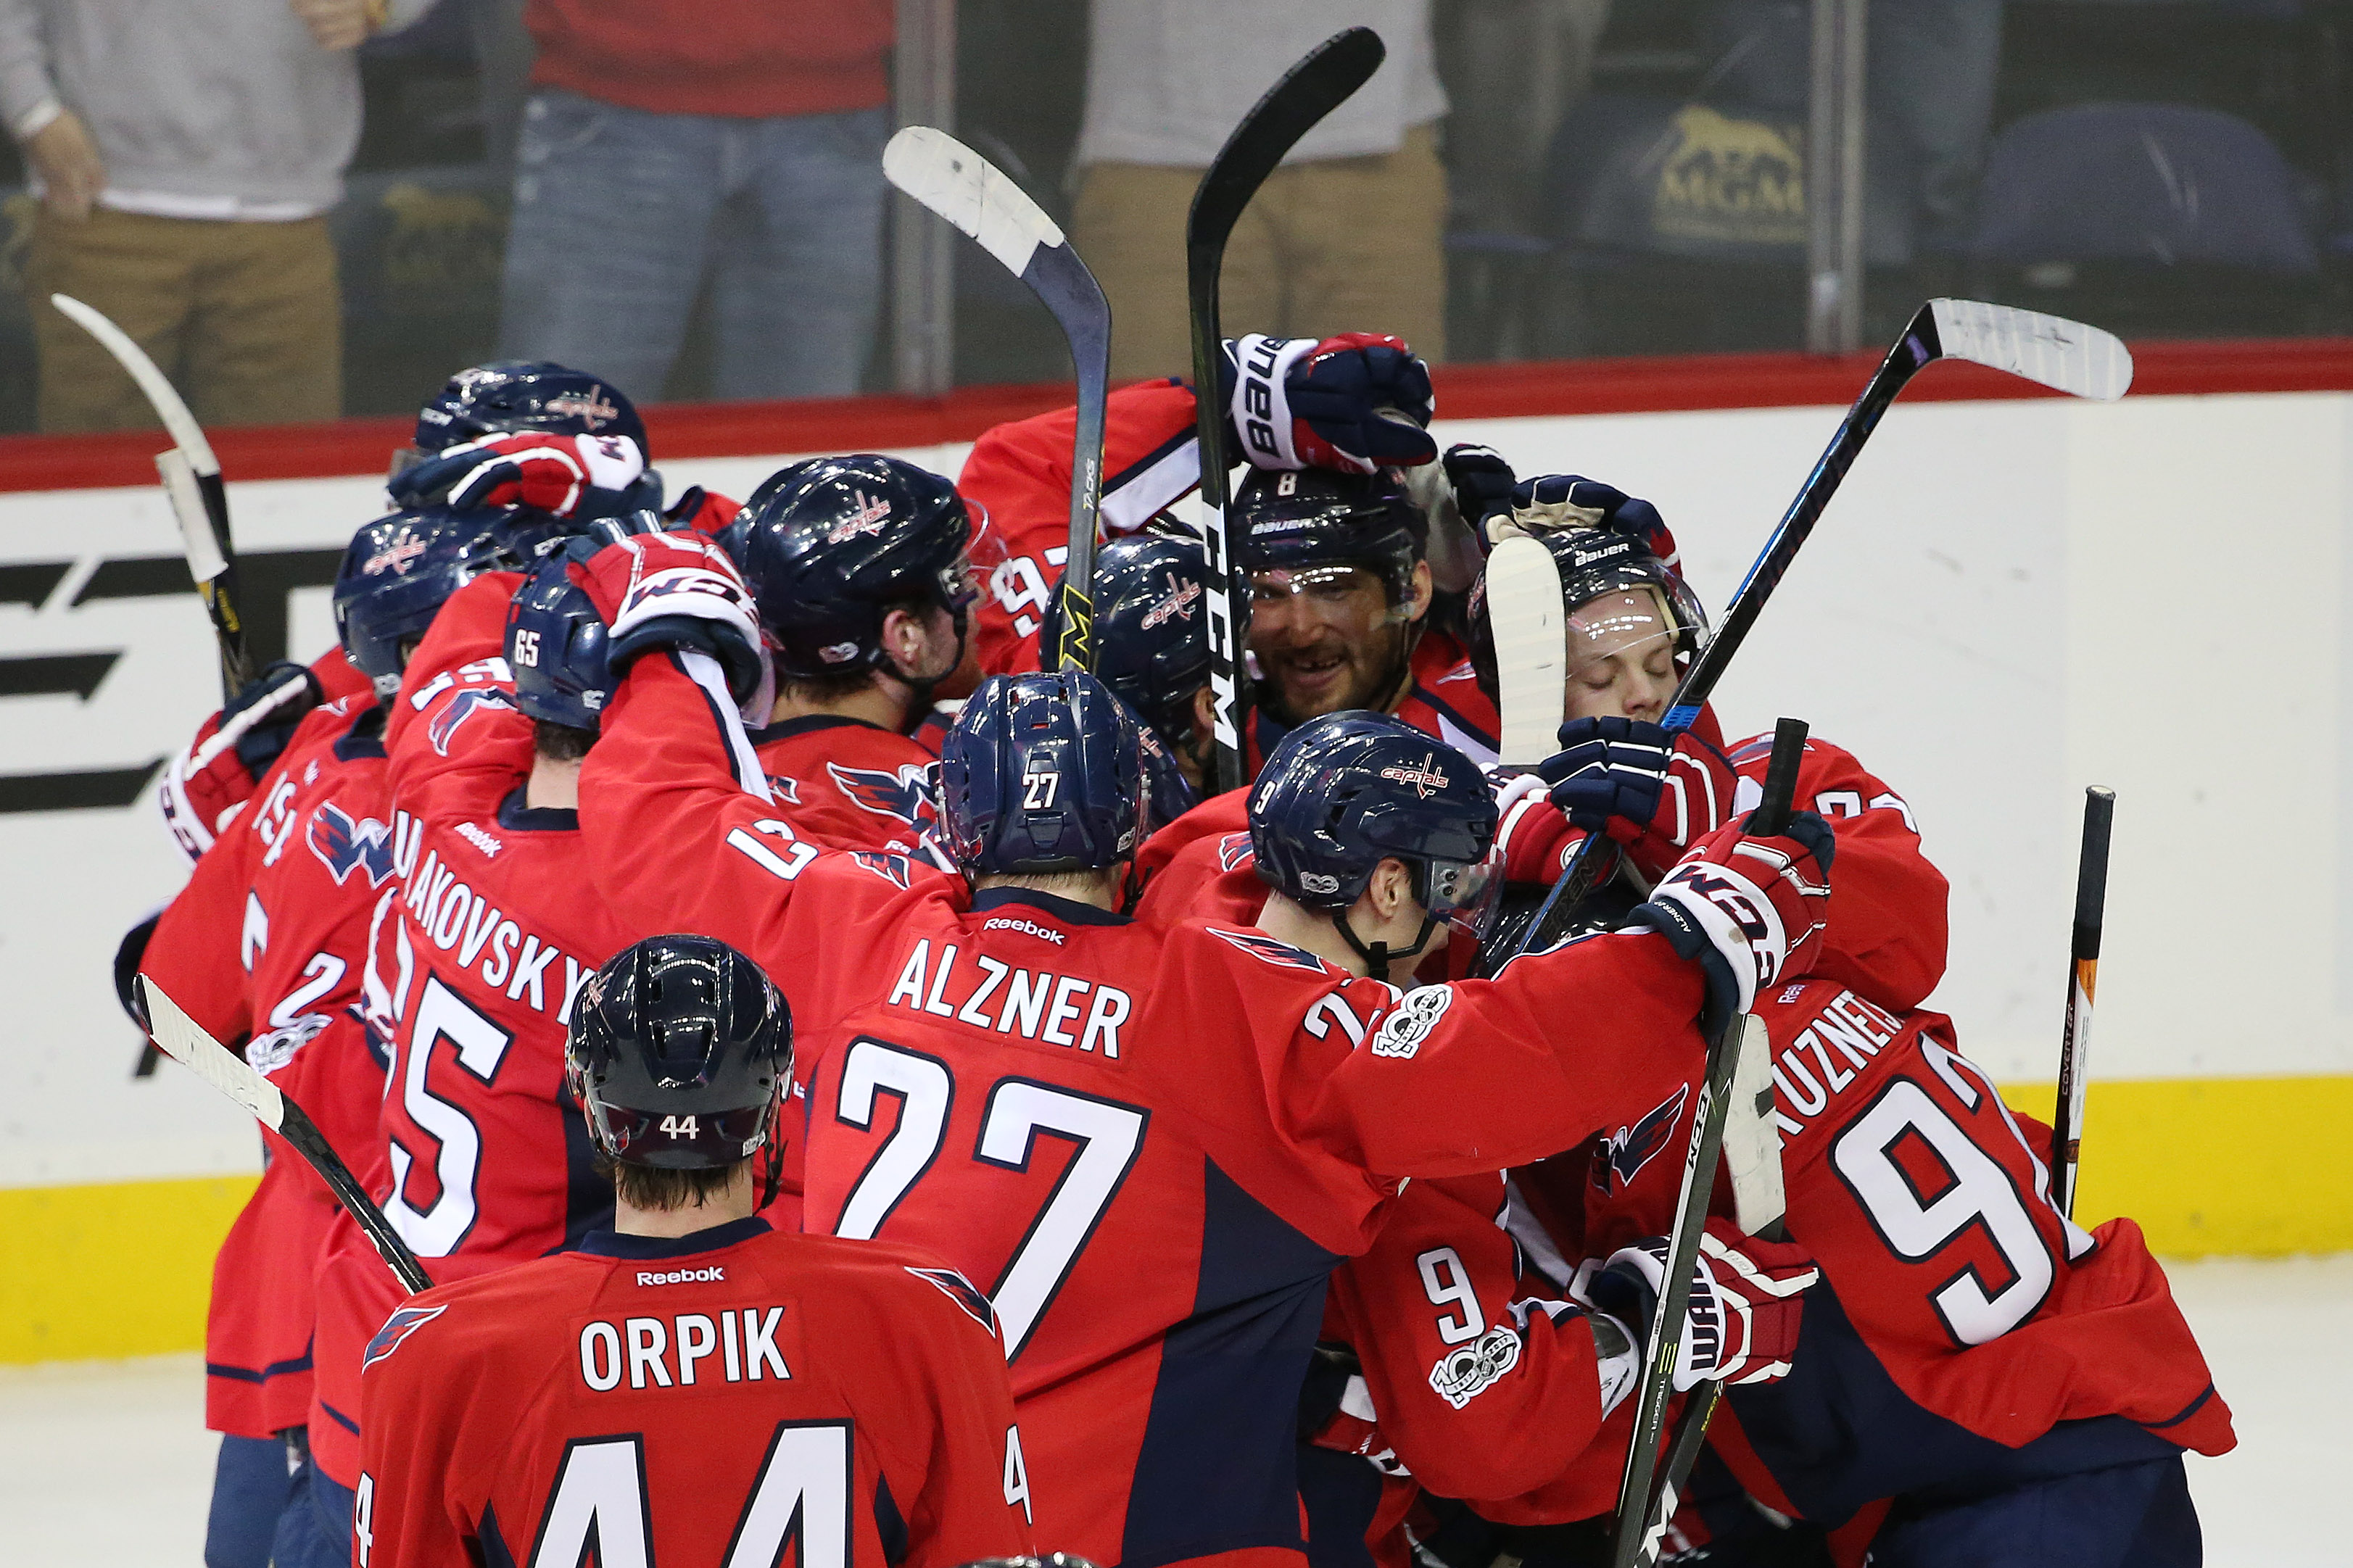 Washington Capitals Get Second Straight Shutout in Victory Over Flyers